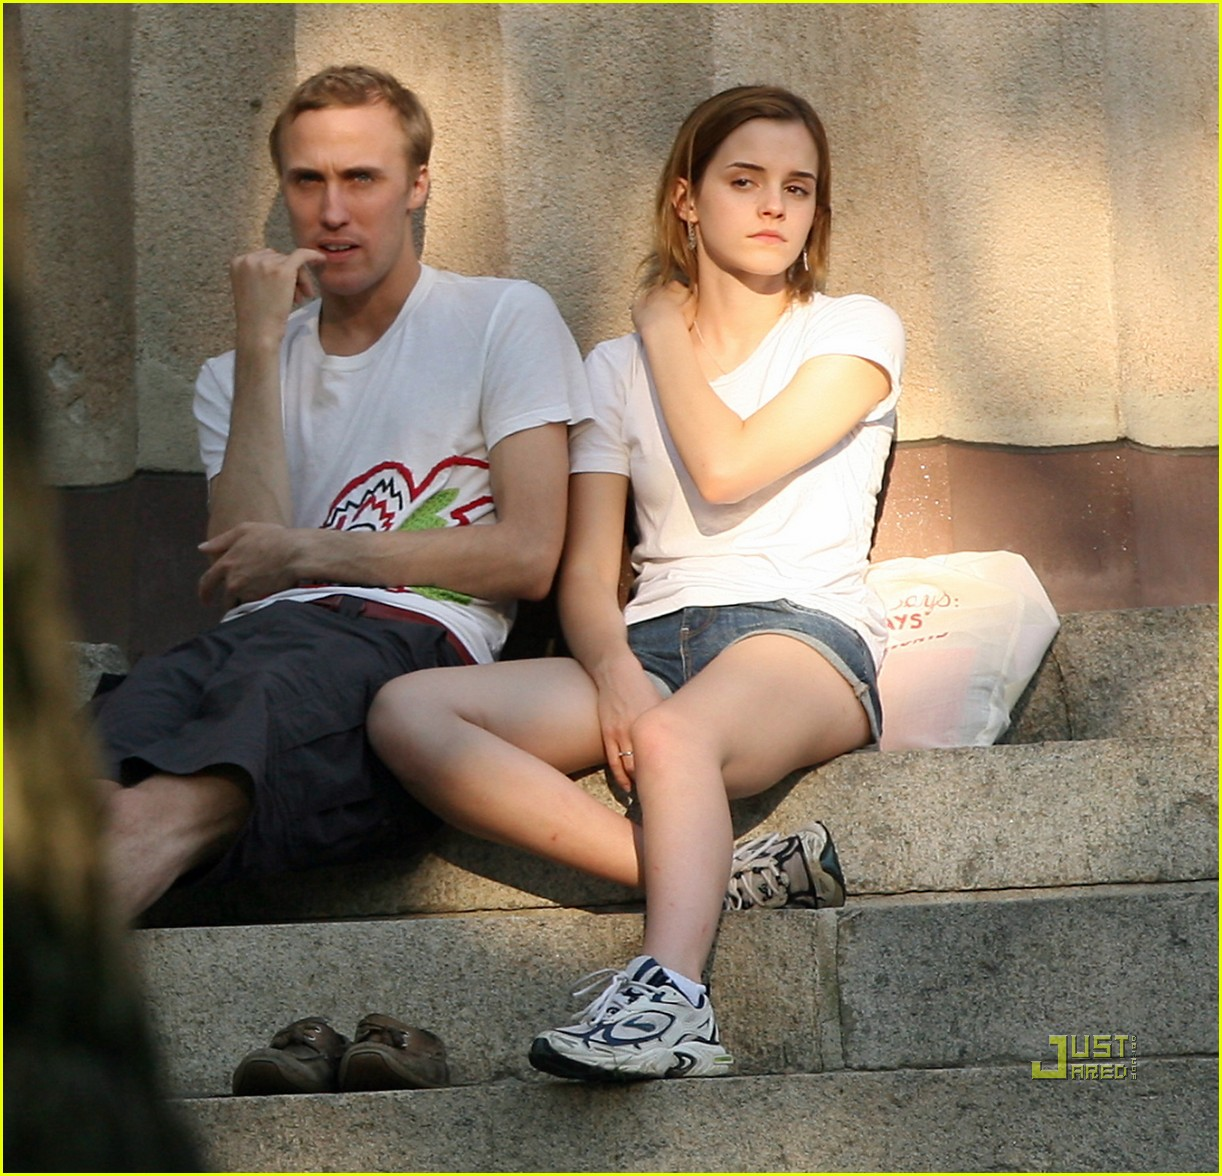 emma watson dating jay barrymore Subscribe for more videos 12 boys emma watson emma watson were rumored to be dating from jay barrymore jay barrymore and emma watson.